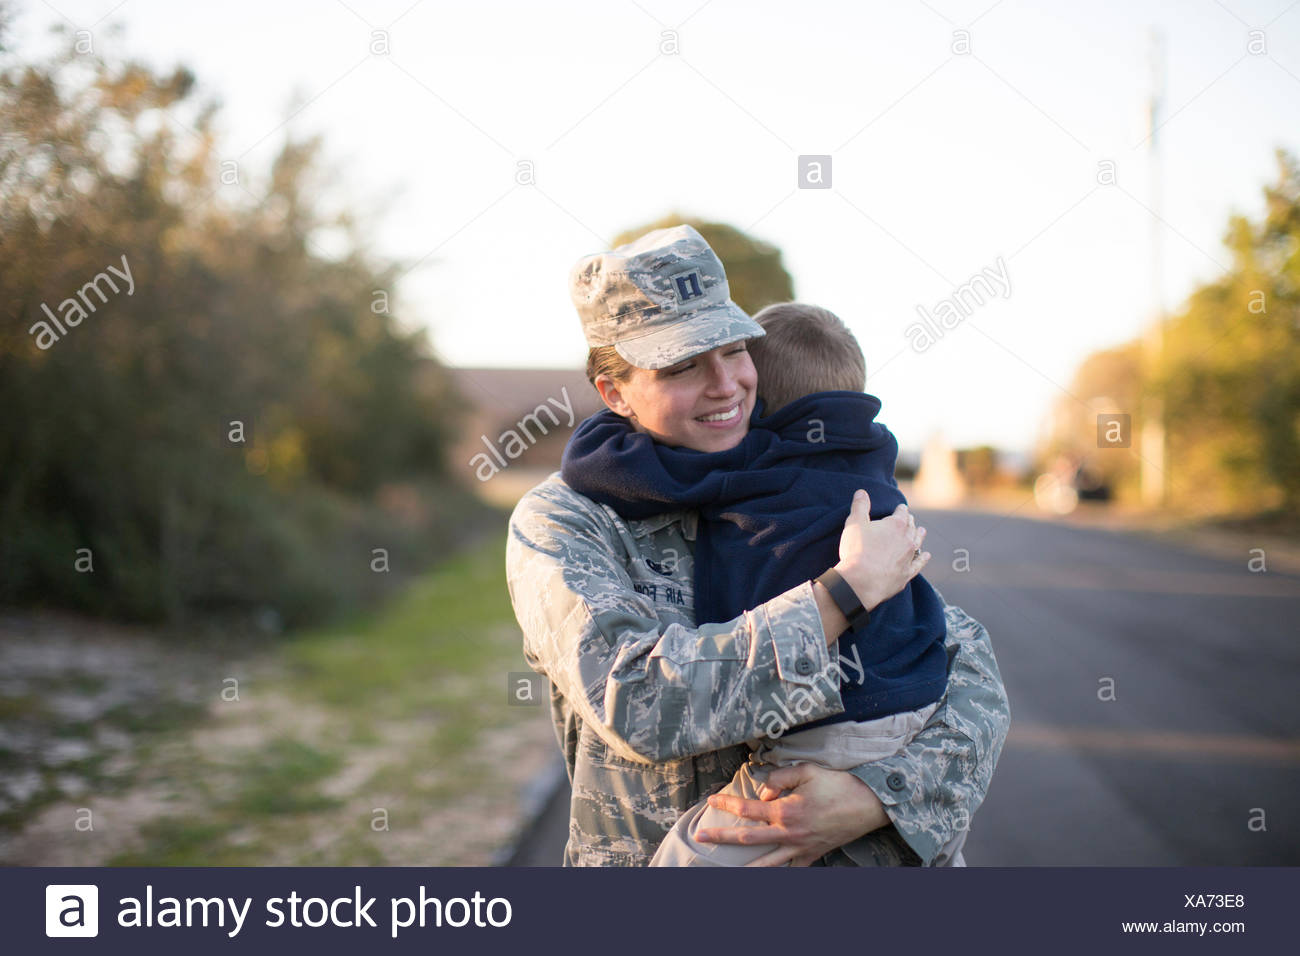 Female soldier hugging son at air force military base - Stock Image